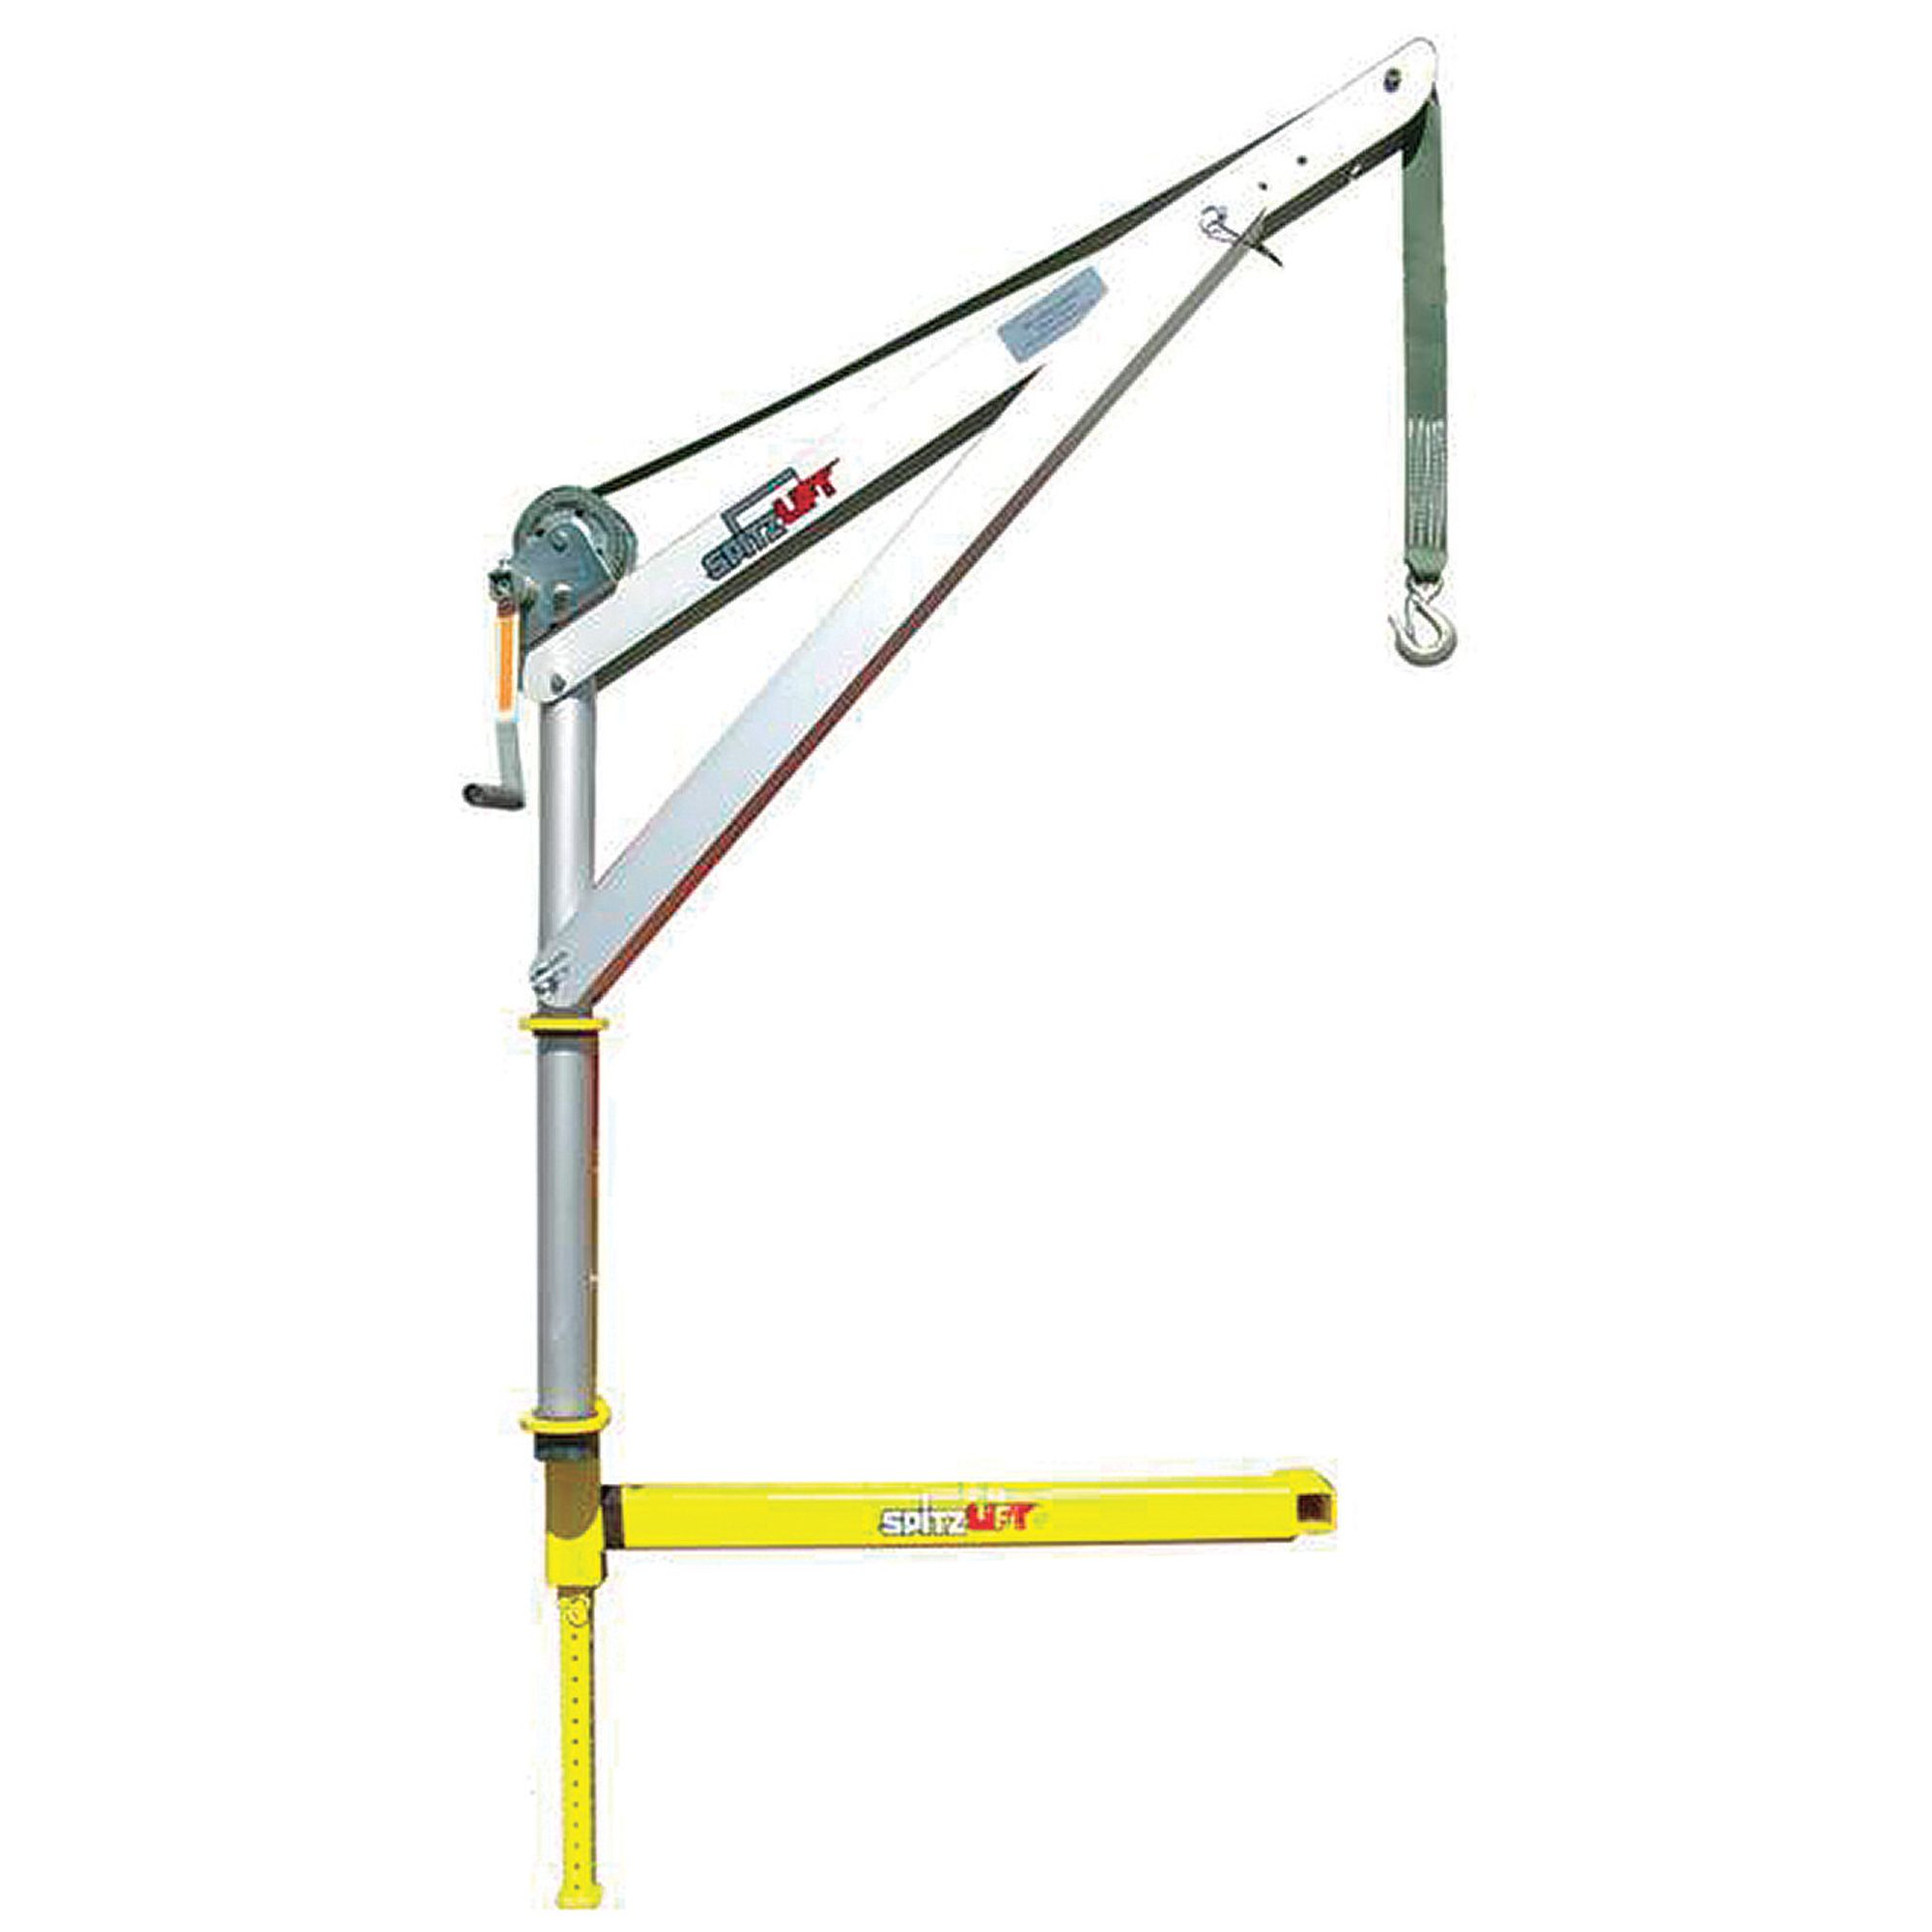 Product spitzlift anodized aluminum hitch mount truck crane with hand winch capacity model